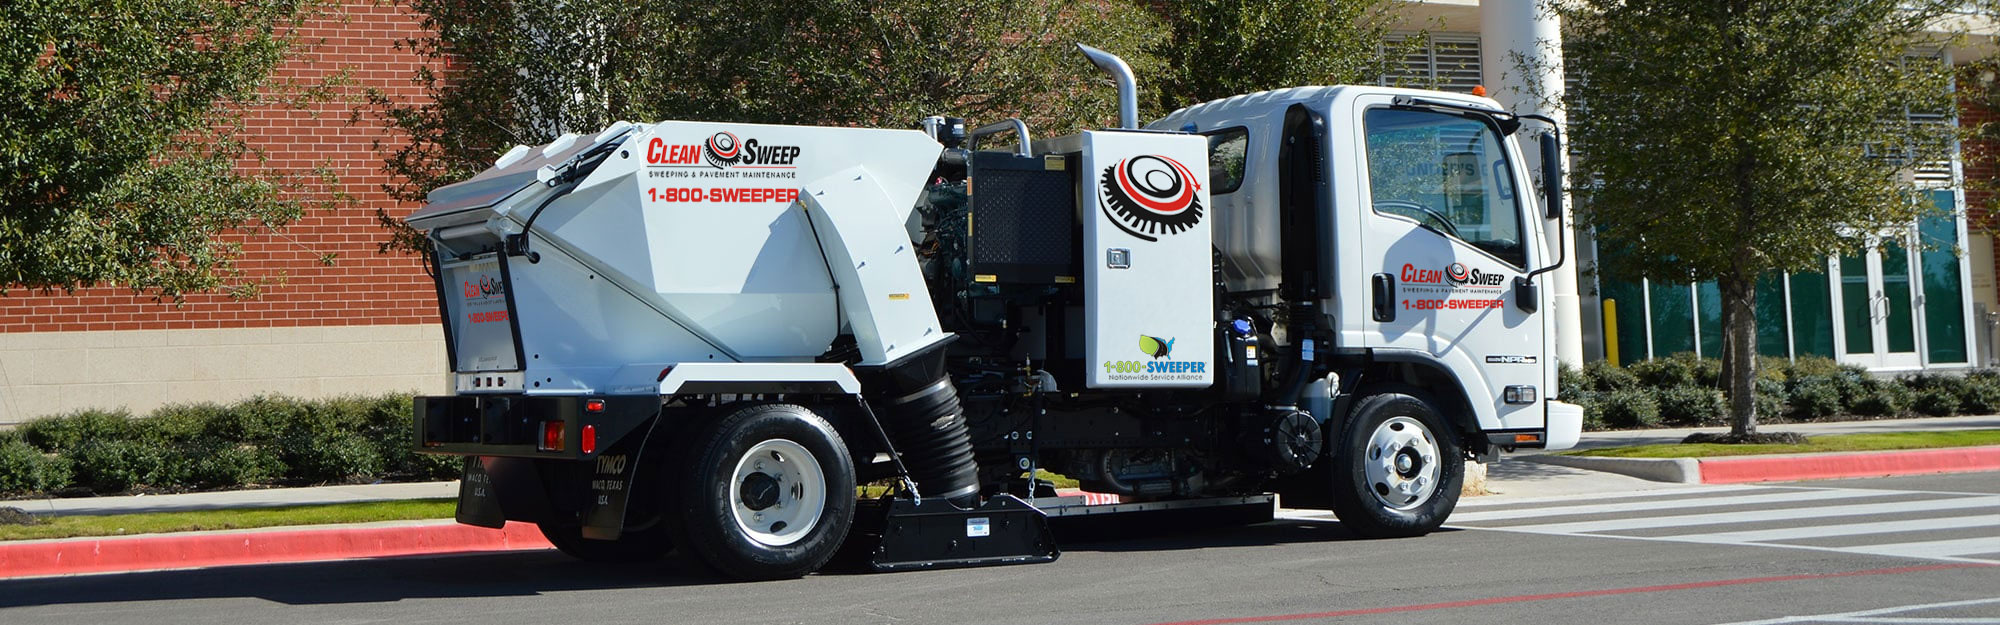 Specialized Equipment Plus Skilled Operators Equals Better Sweeping